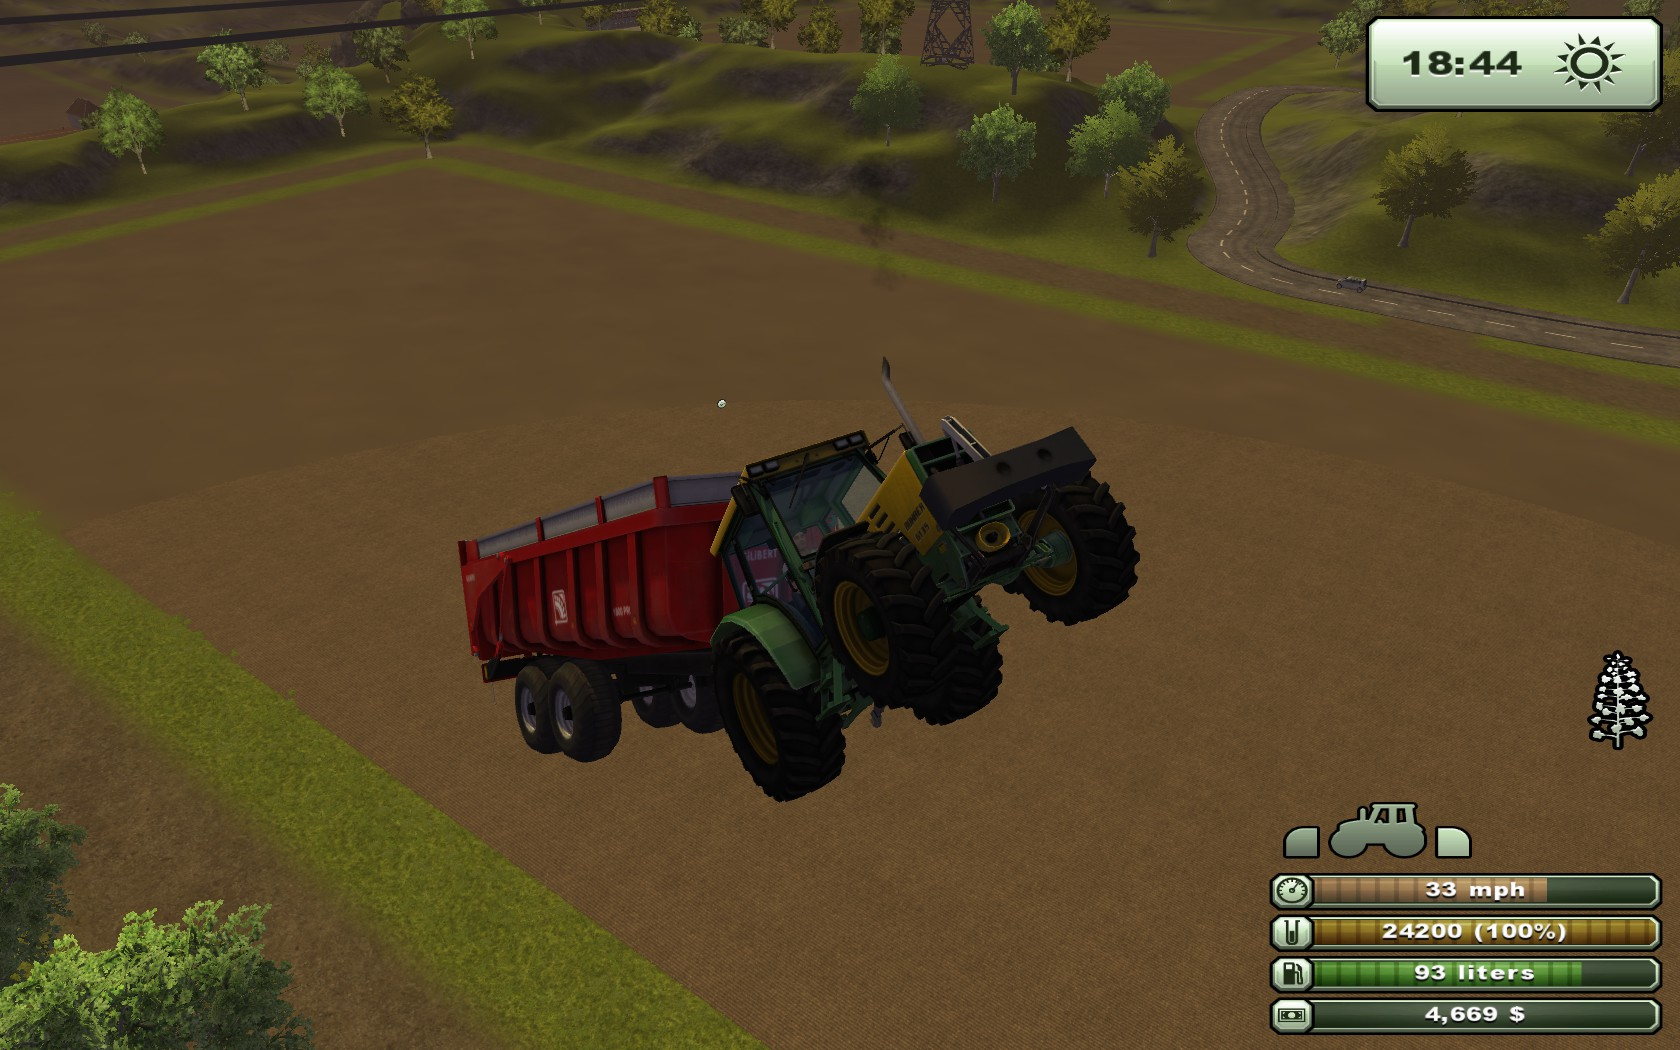 Steam Community :: Guide :: Starting Out in Farming Simulator 2013